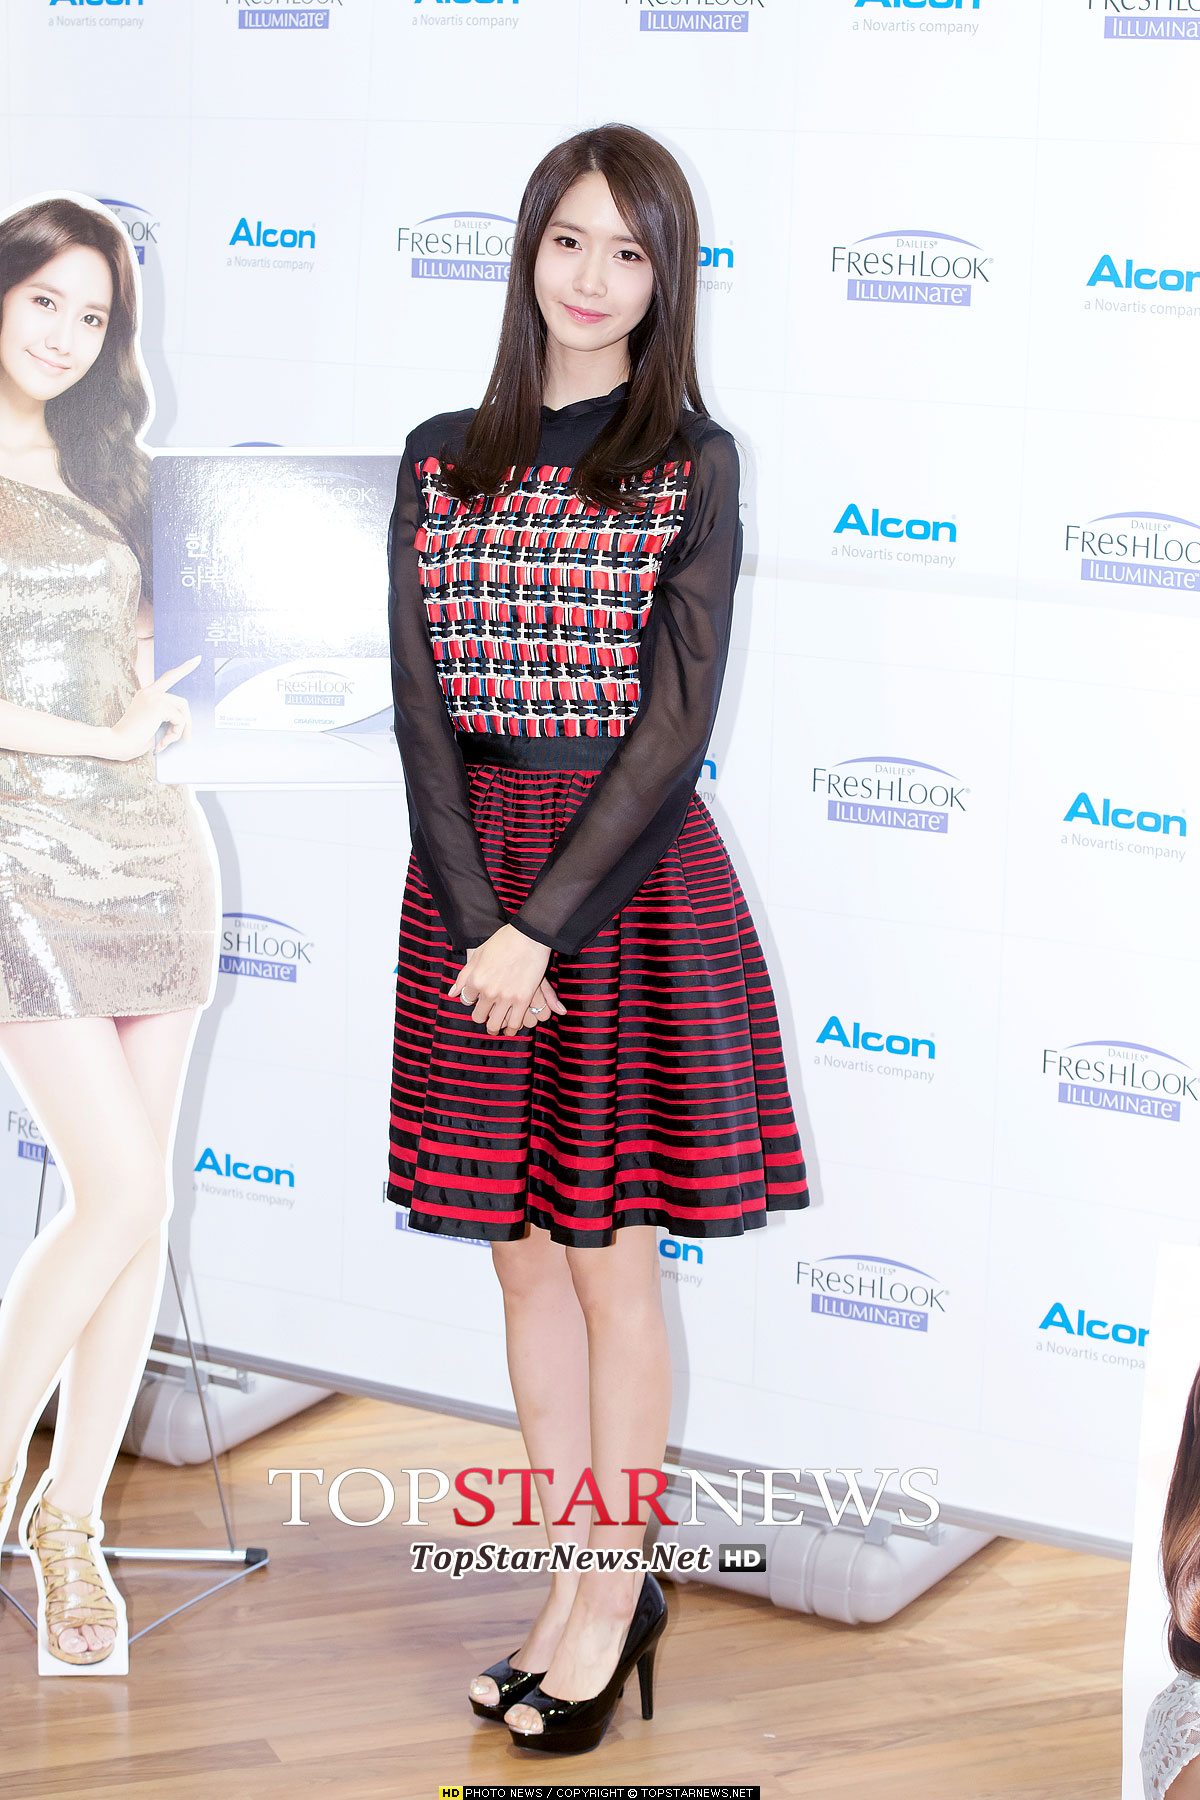 Yoona Alcon Freshlook Illuminate event